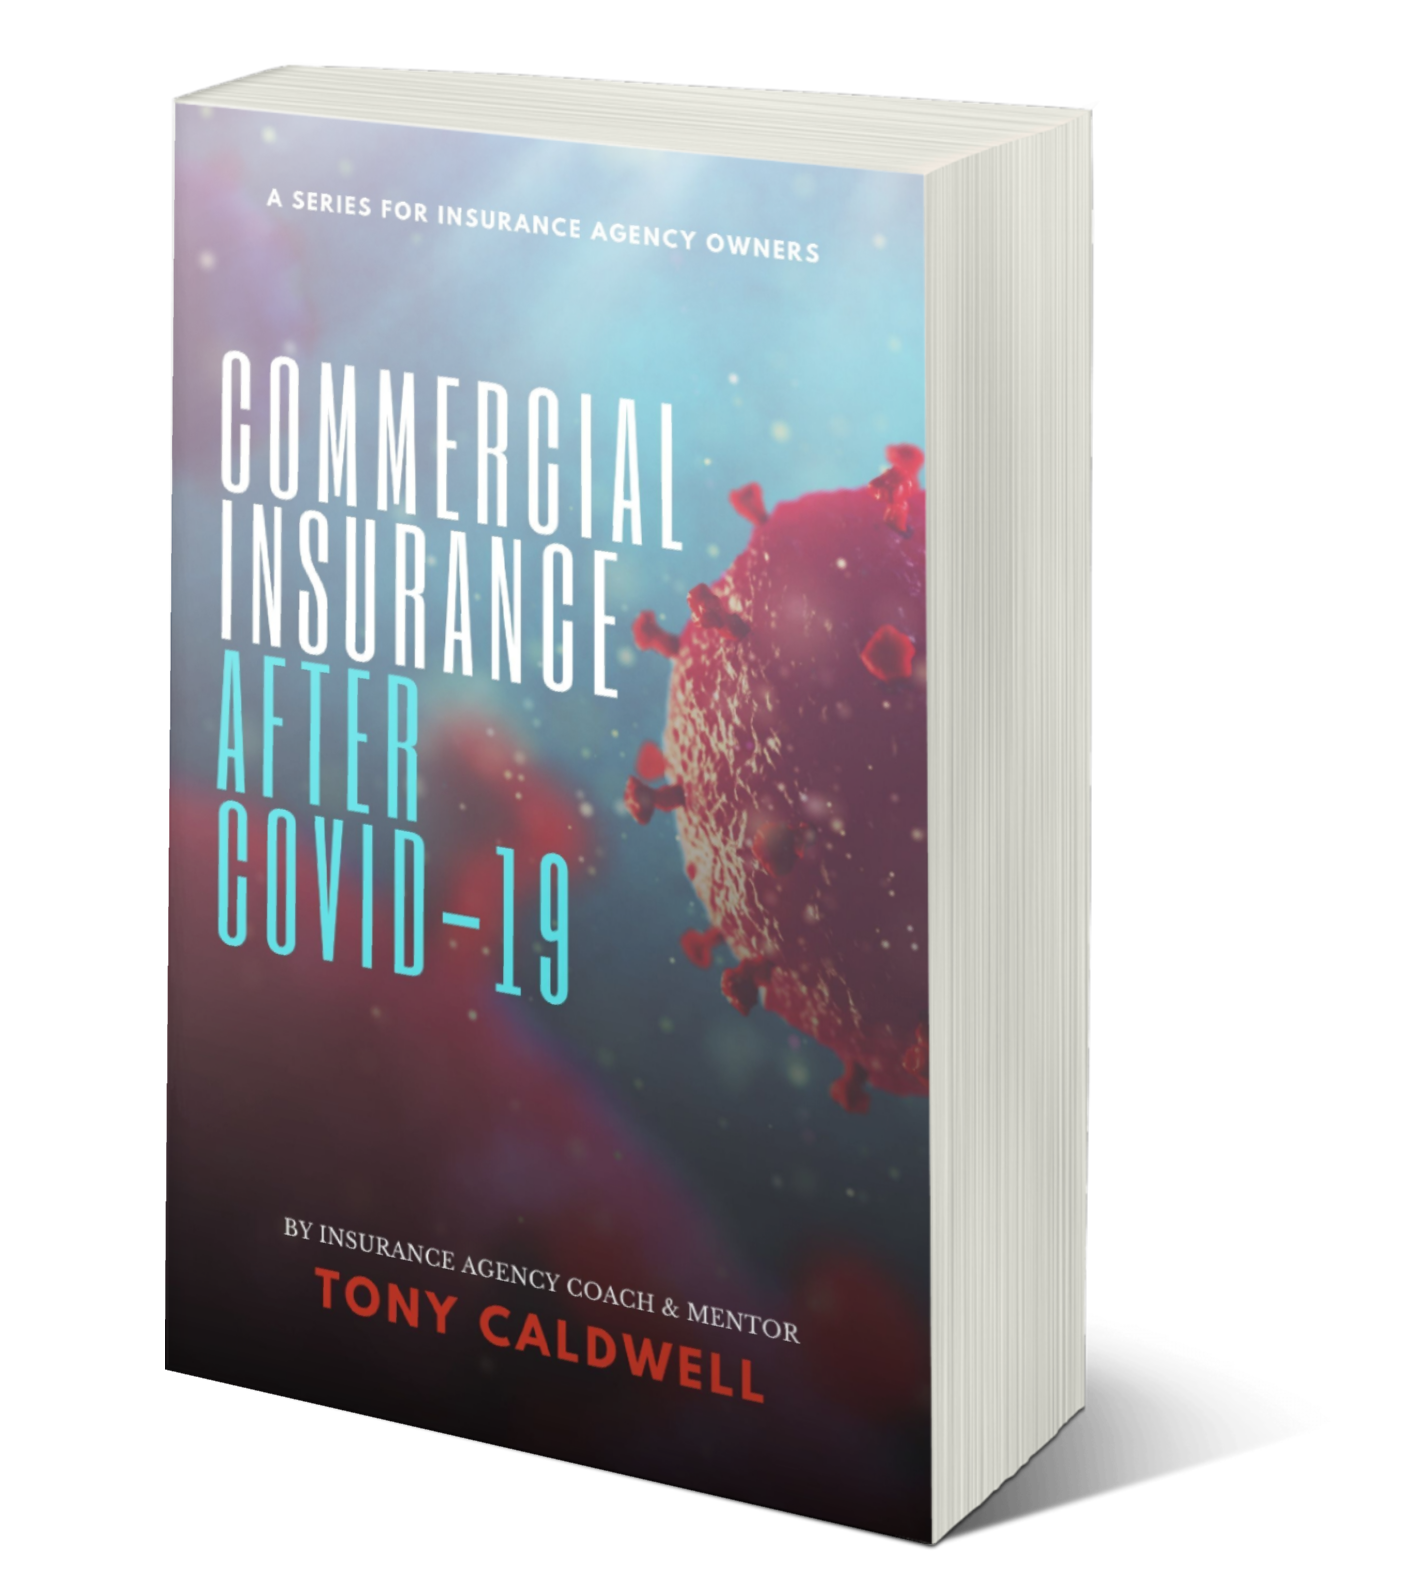 Commercial Insurance After COVID-19